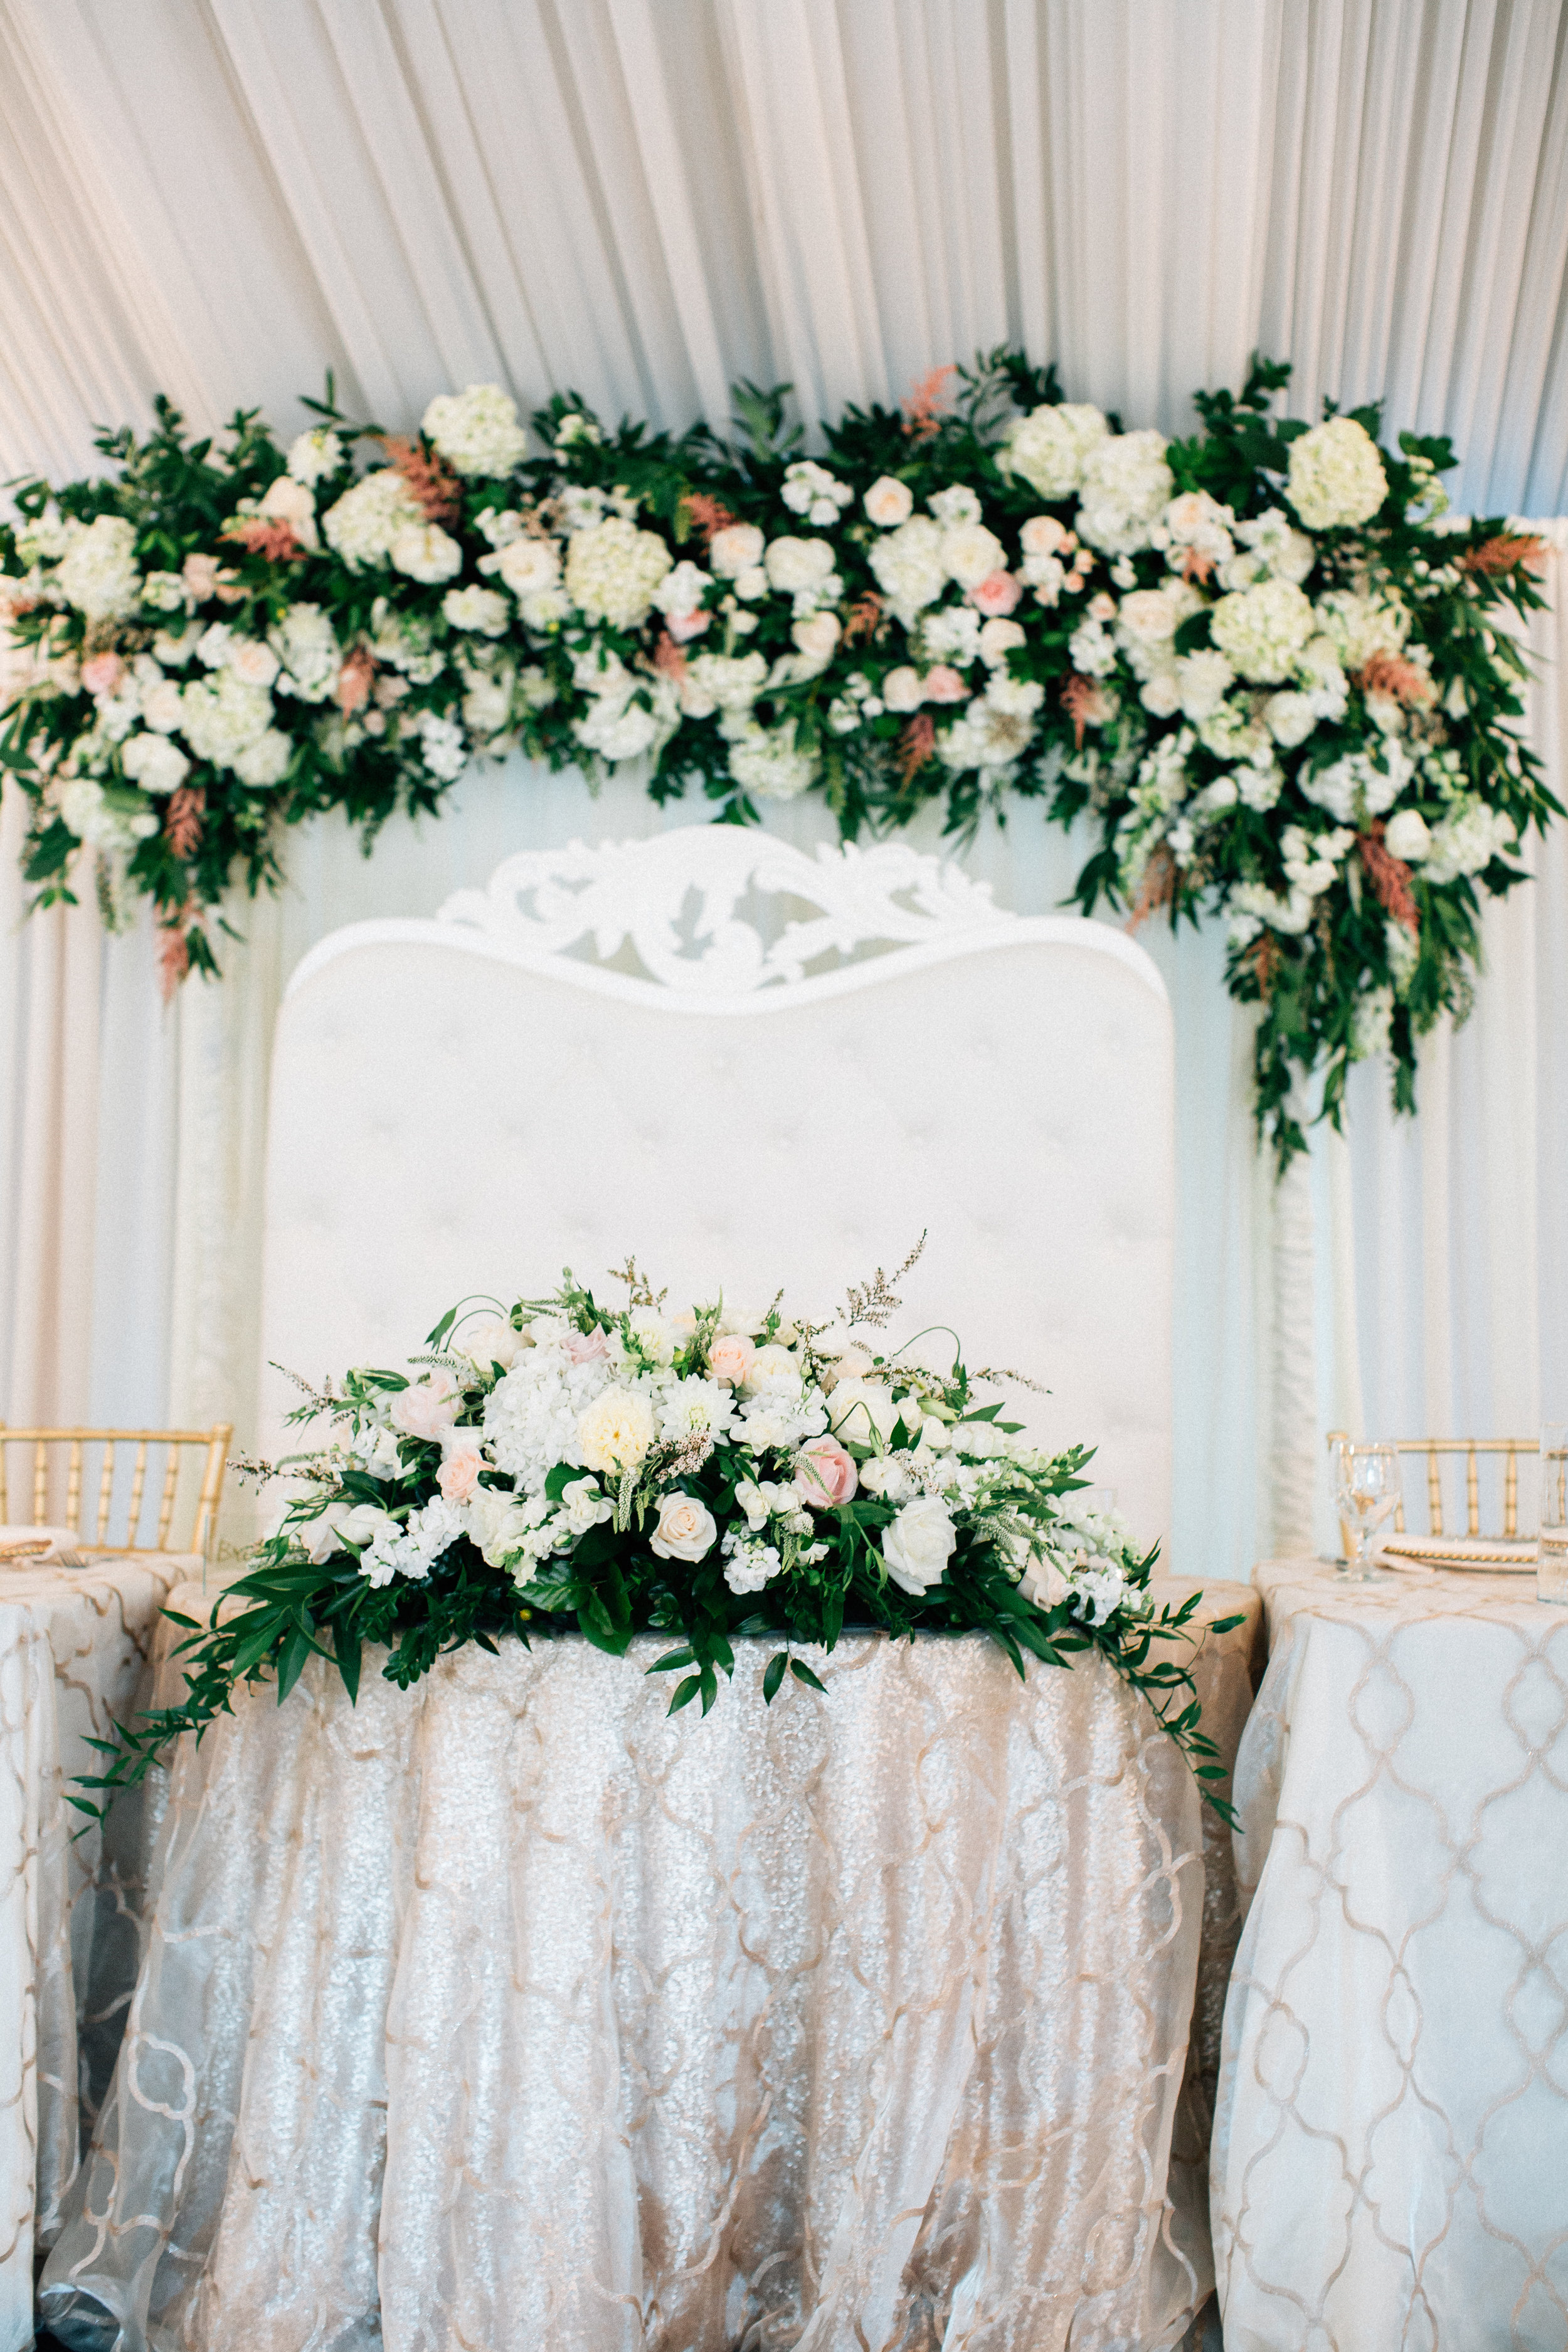 sweetheart_table_lush_gorgeous_flowers_greenery_white_blush_accent_violette_fleurs_anna_perevertaylo.jpg